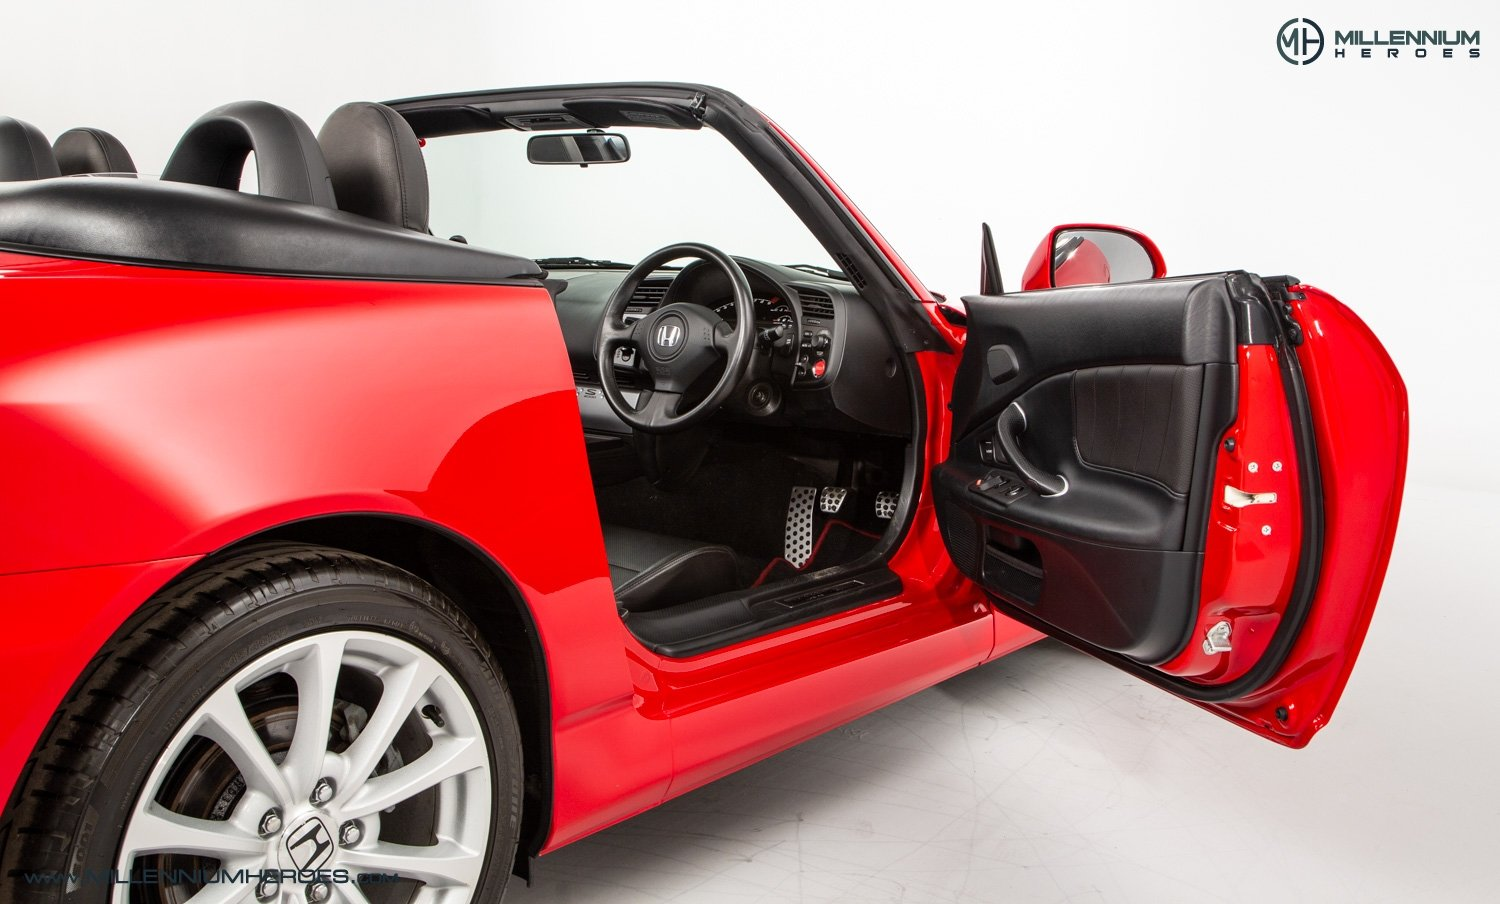 2007 HONDA S2000  For Sale (picture 11 of 21)